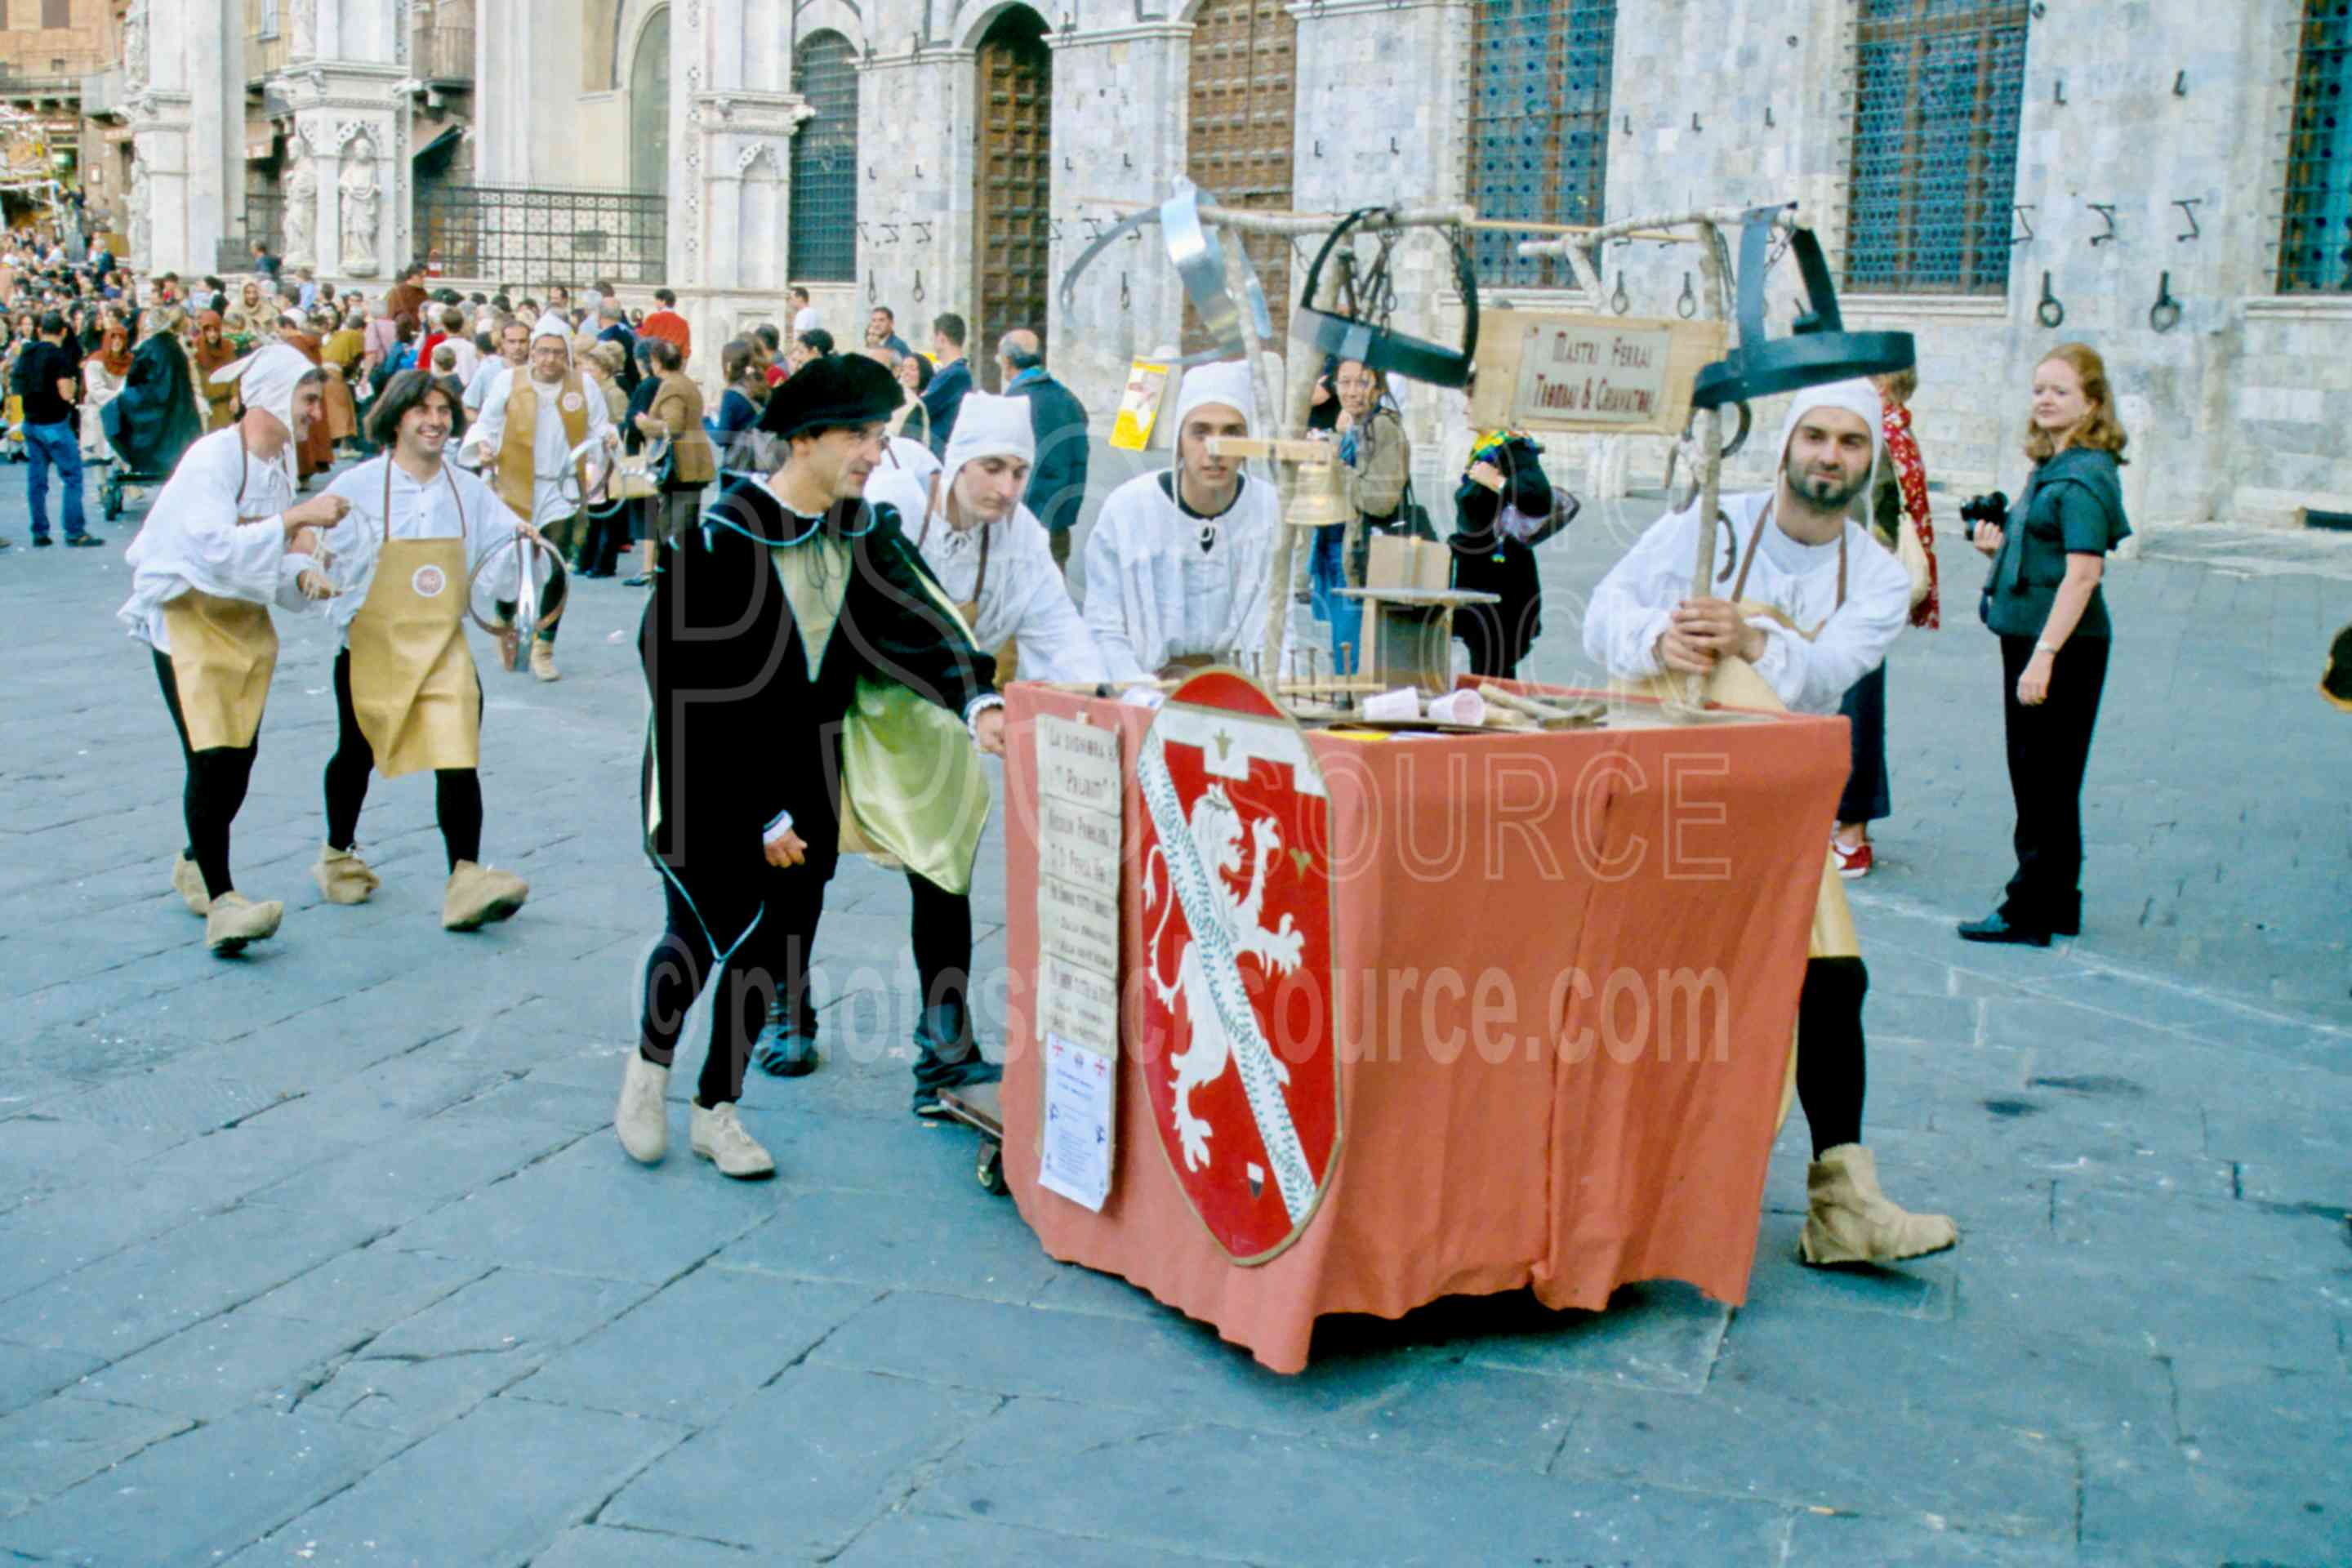 Parade in Il Campo,ceremony,donkey,europe,gather,il campo,palio,parade,ceremonies